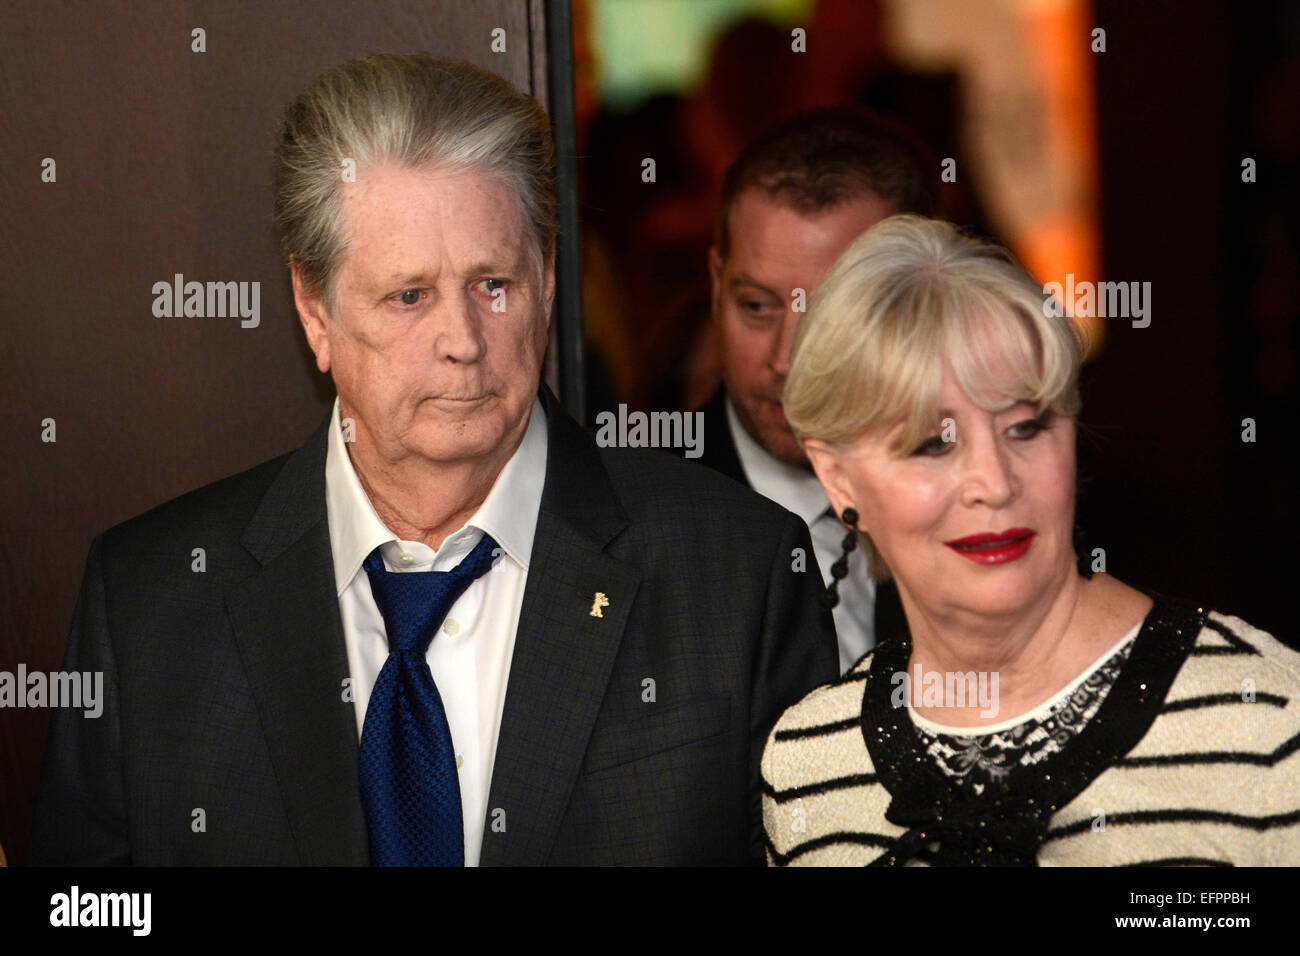 Brian Wilson Beach Boys And His Wife Melinda Ledbetter During The Love Mercy Photocall At 65th Berlin International Film